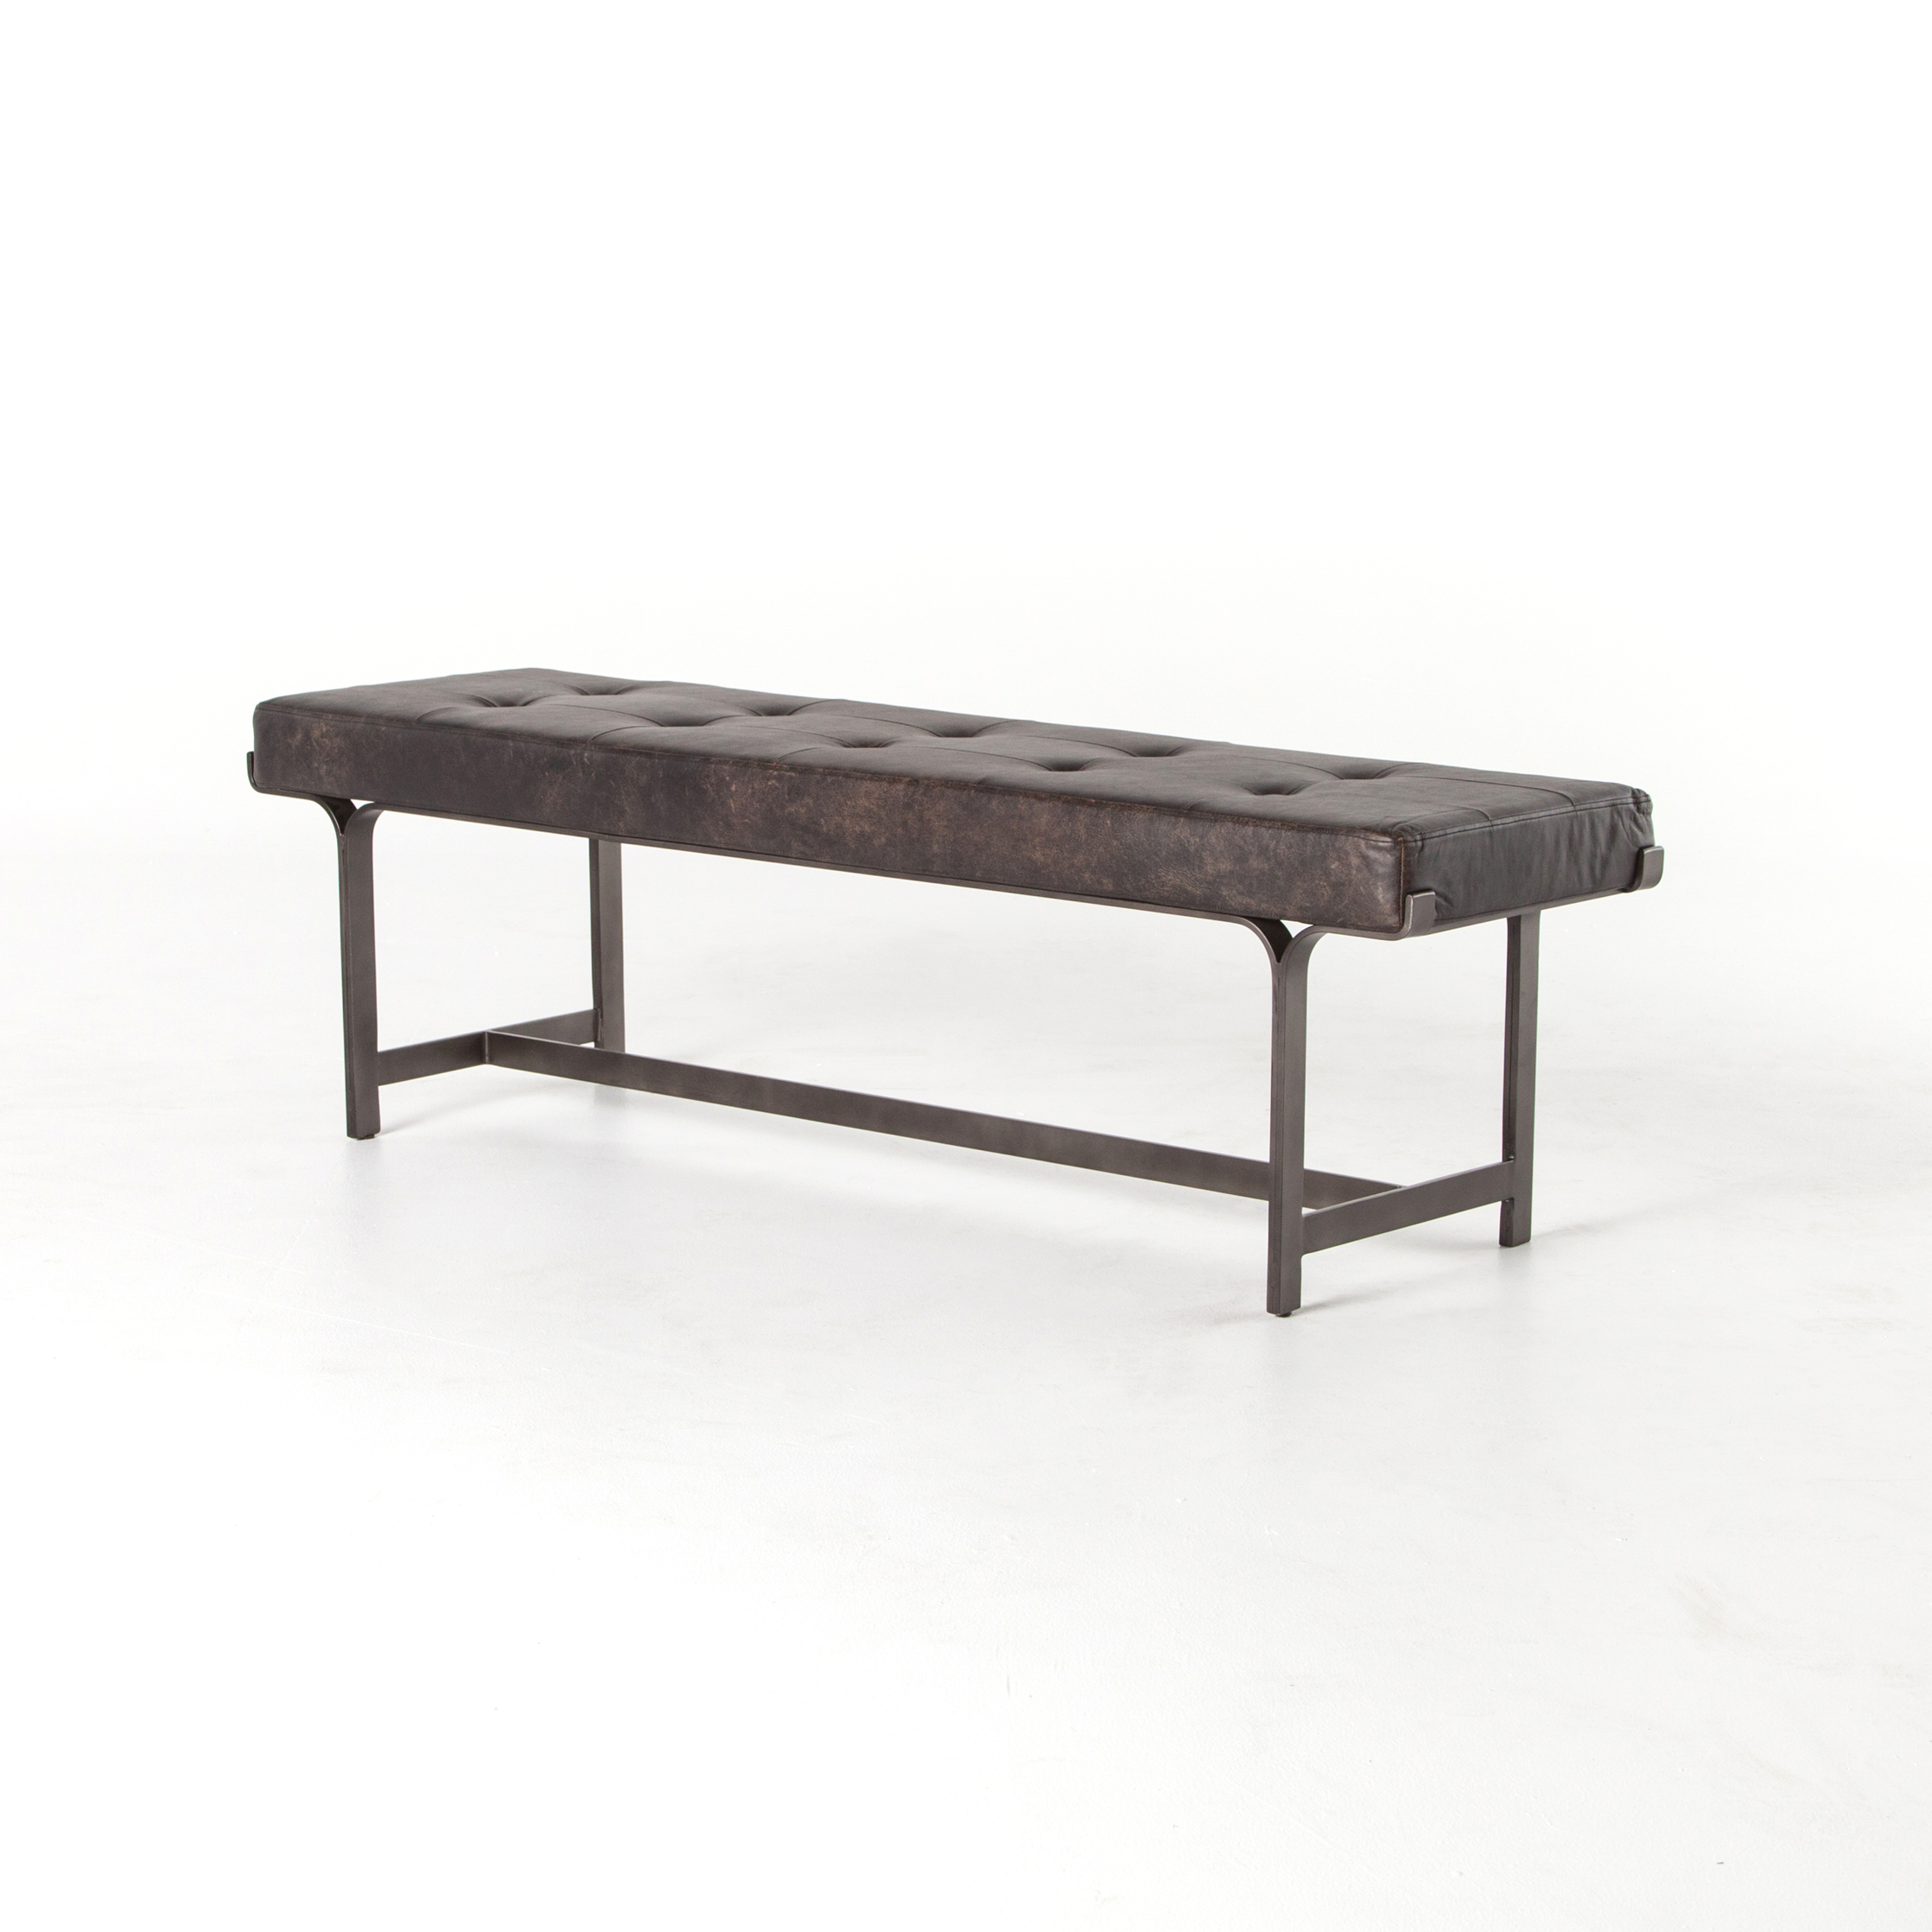 Four-Hands-Lindy-bench